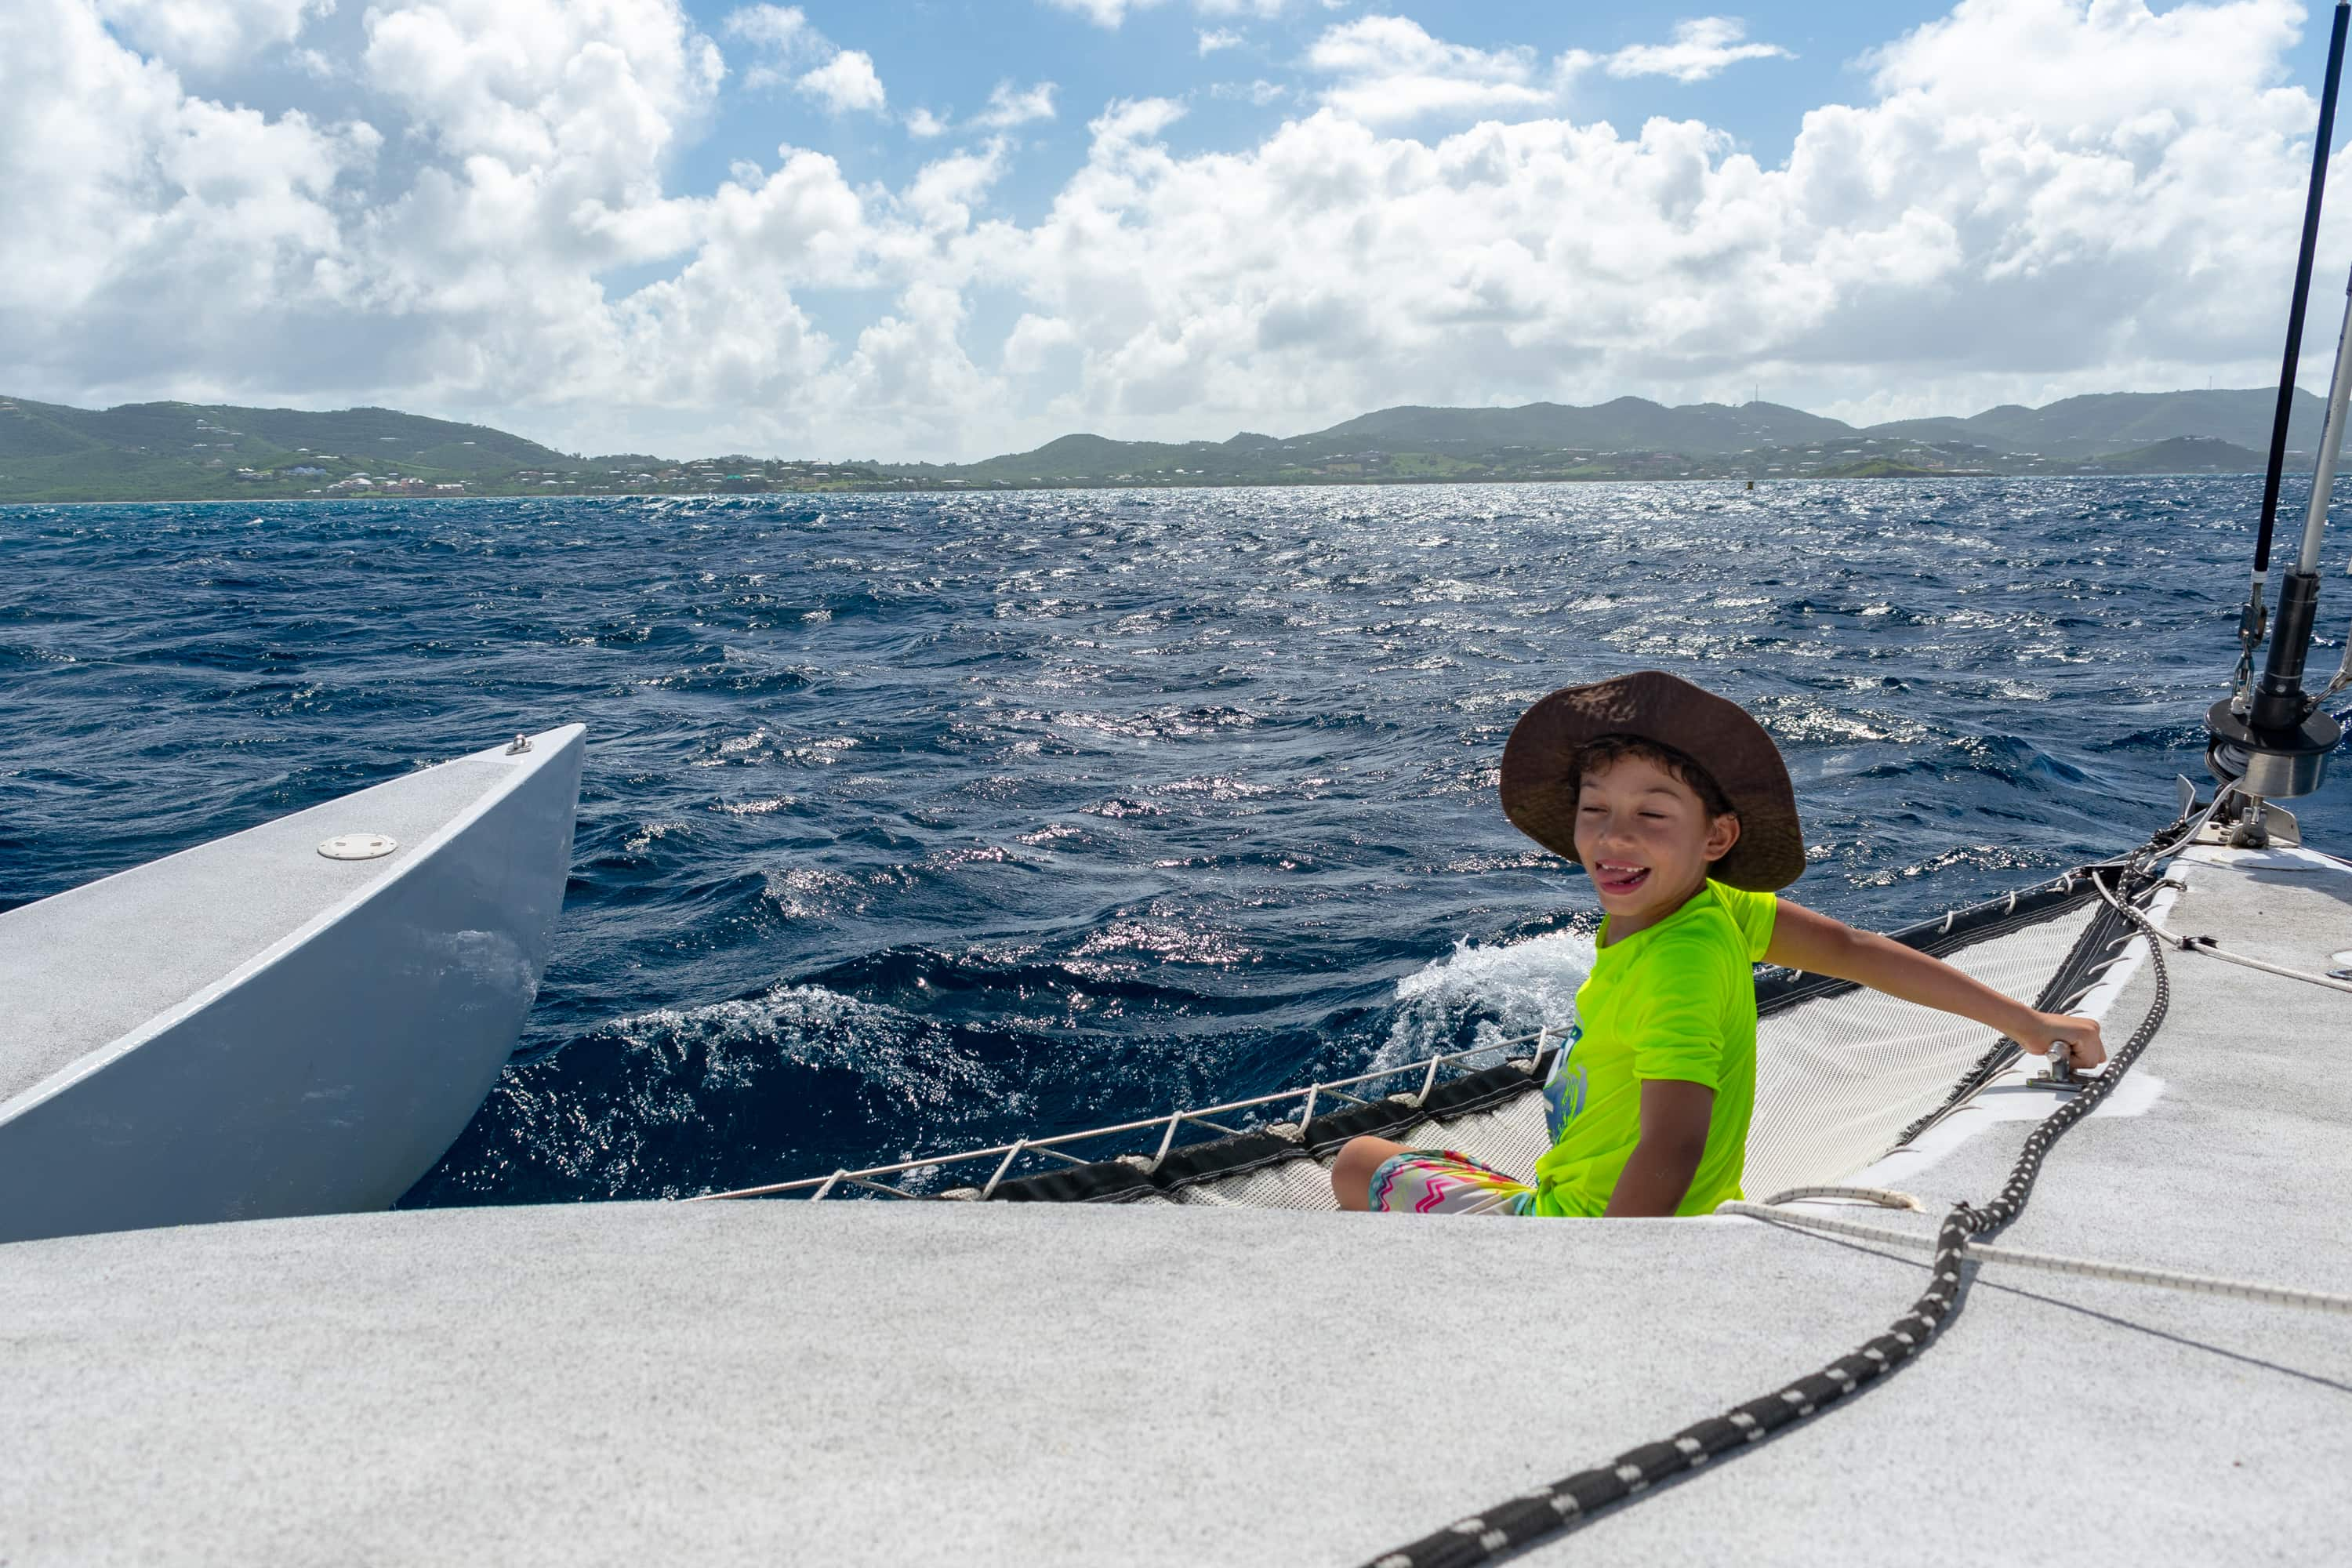 Caribbean Sailing yields smiles | SBPR